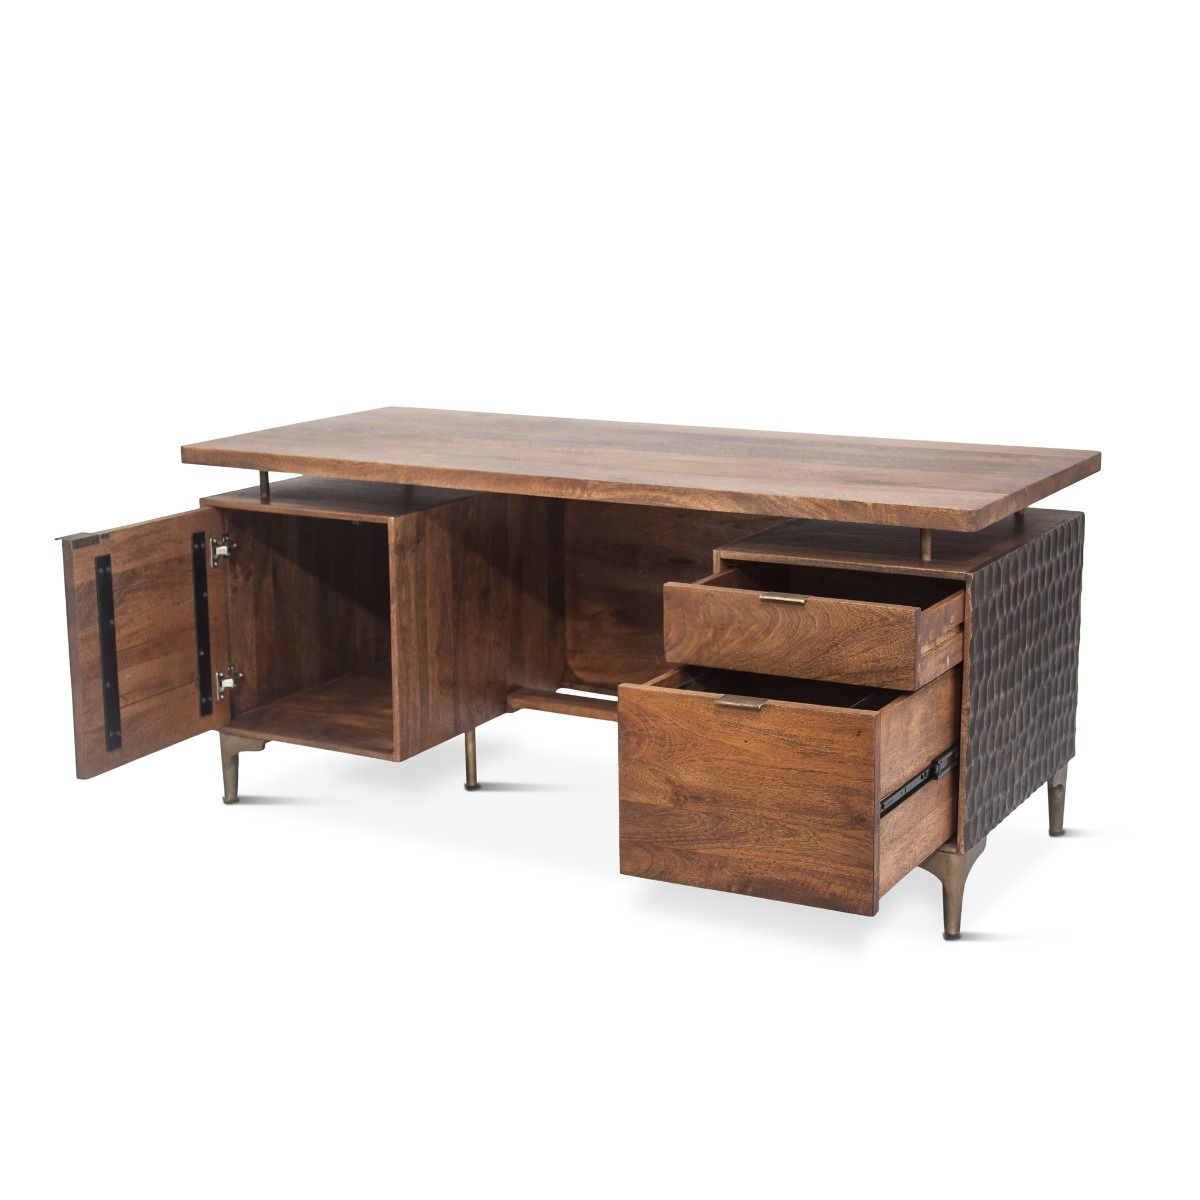 Mango Wood and Reclaimed Iron Industrial Desk - Furniture on Main